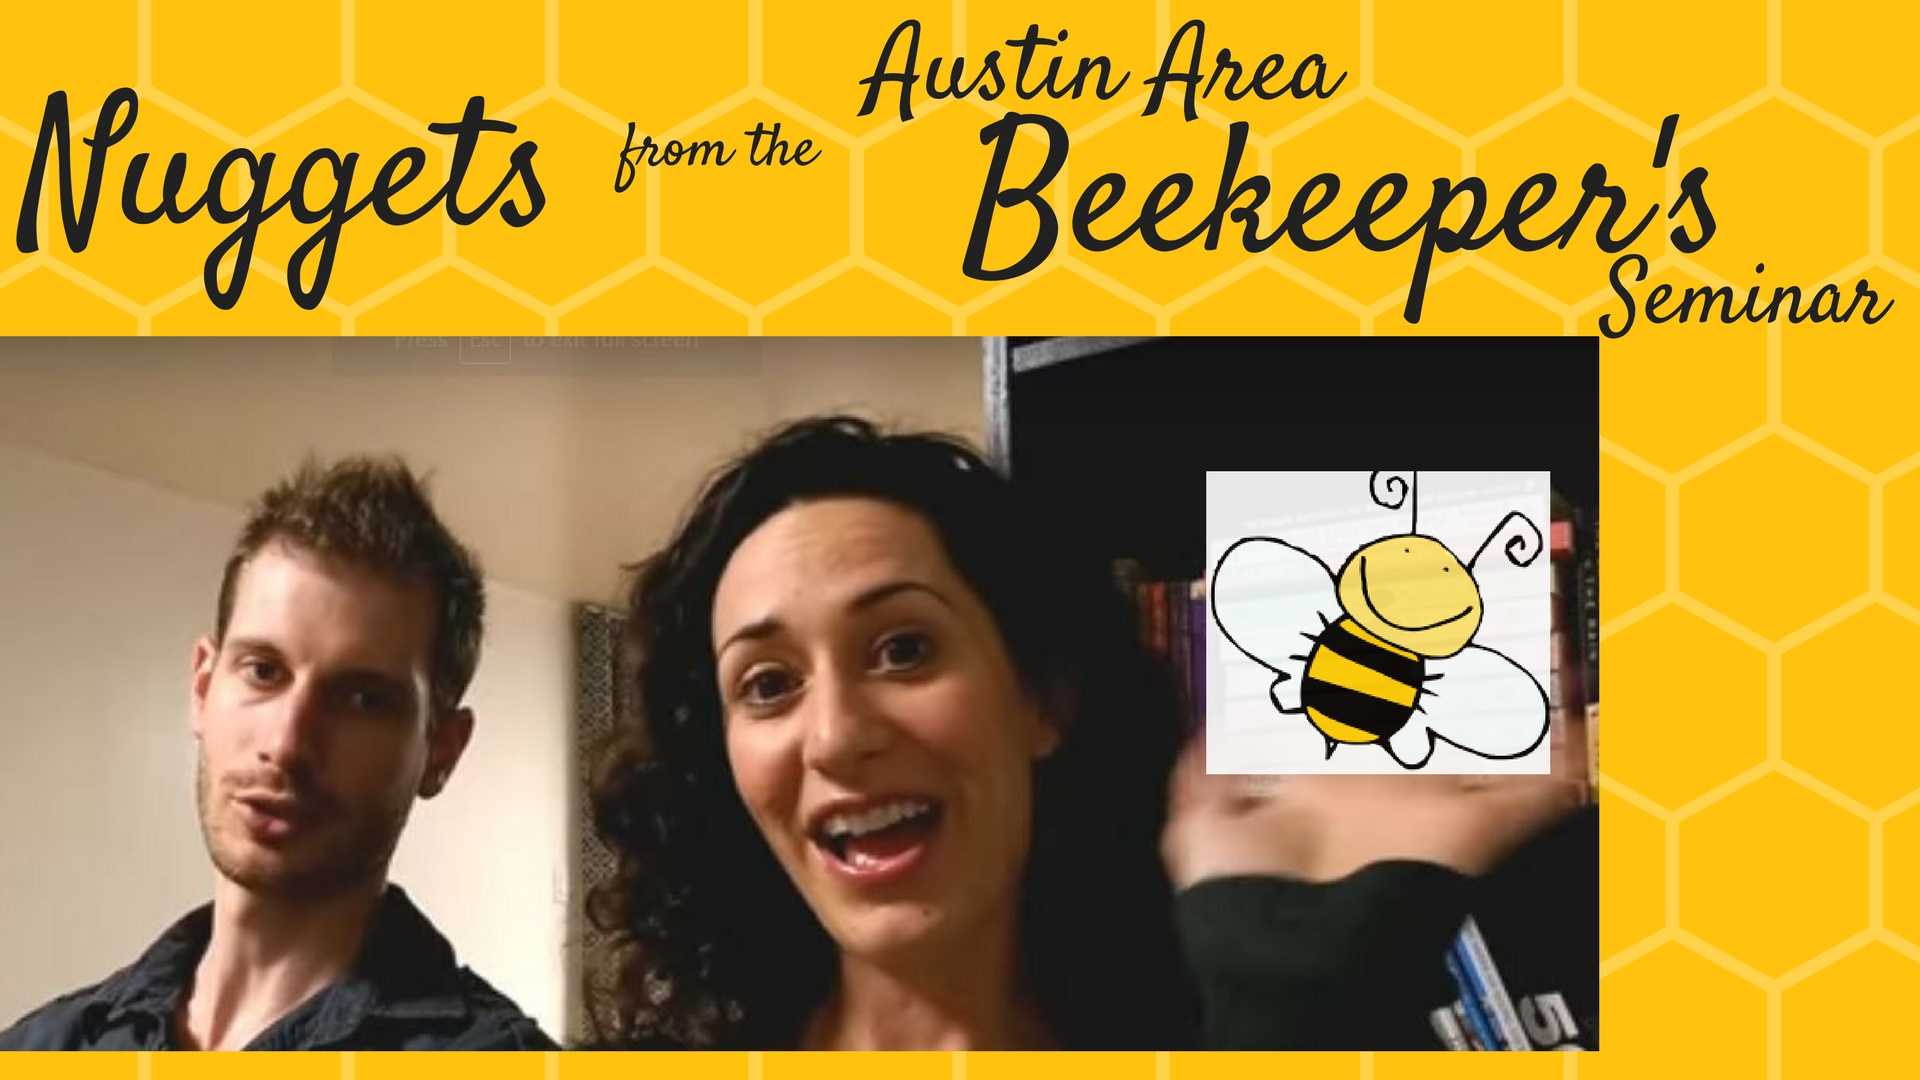 Nuggets from the Austin Area Beekeeper's Seminar